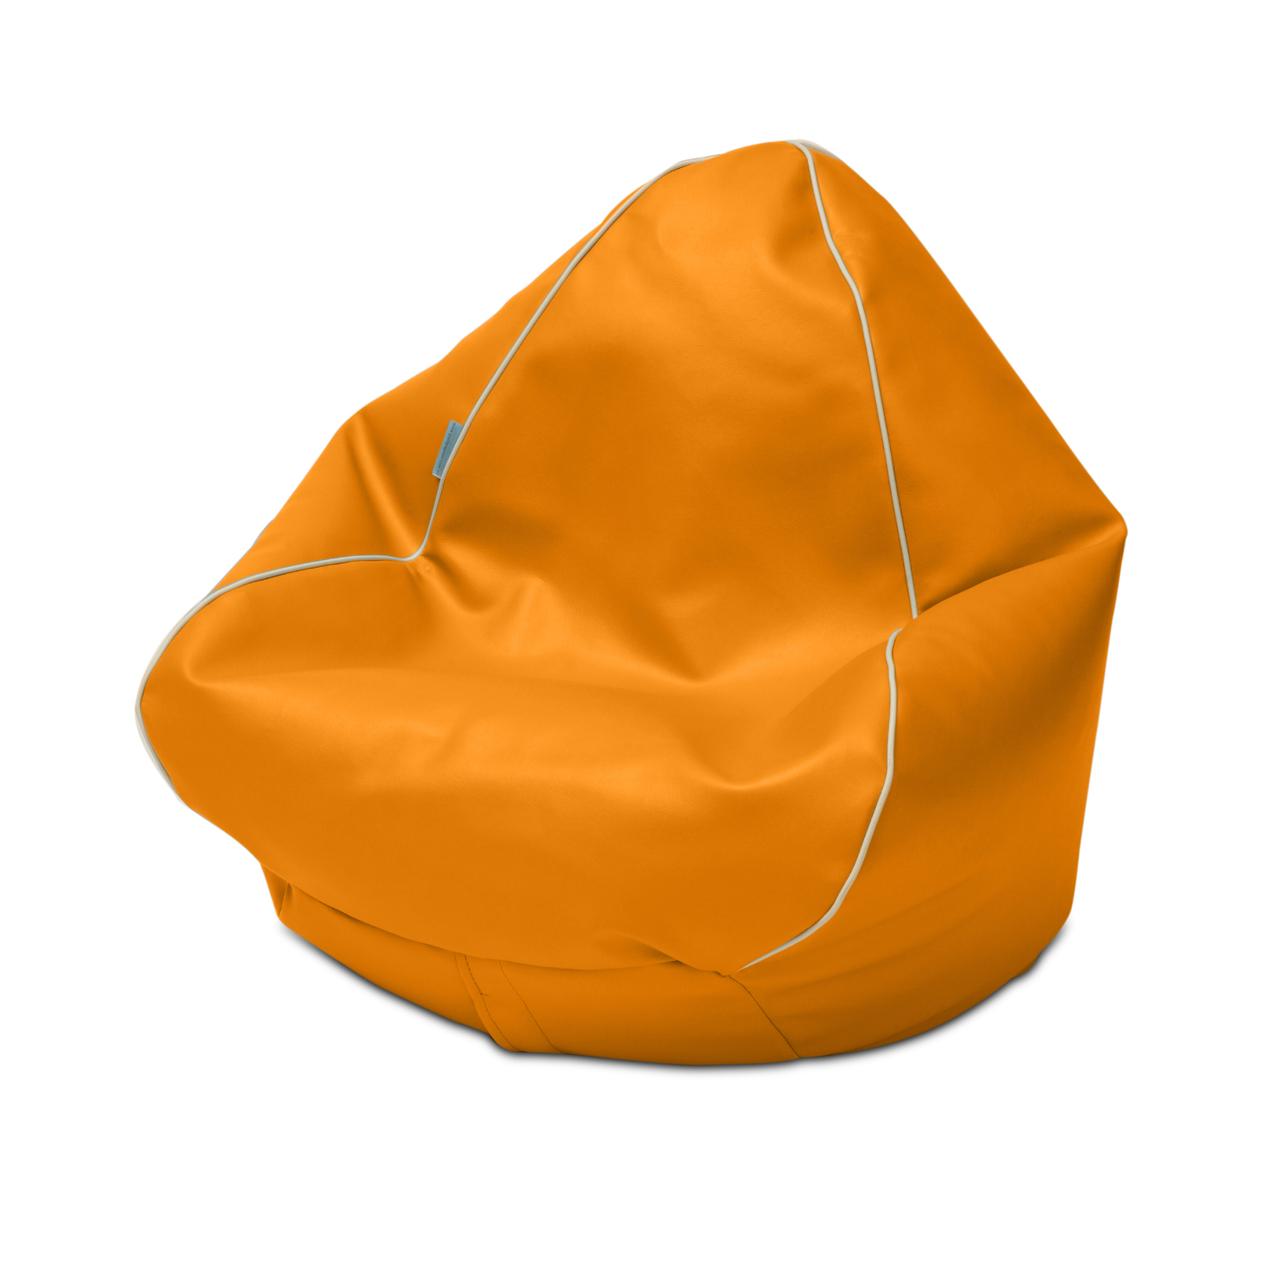 Retro Kids Bean Bag in orange